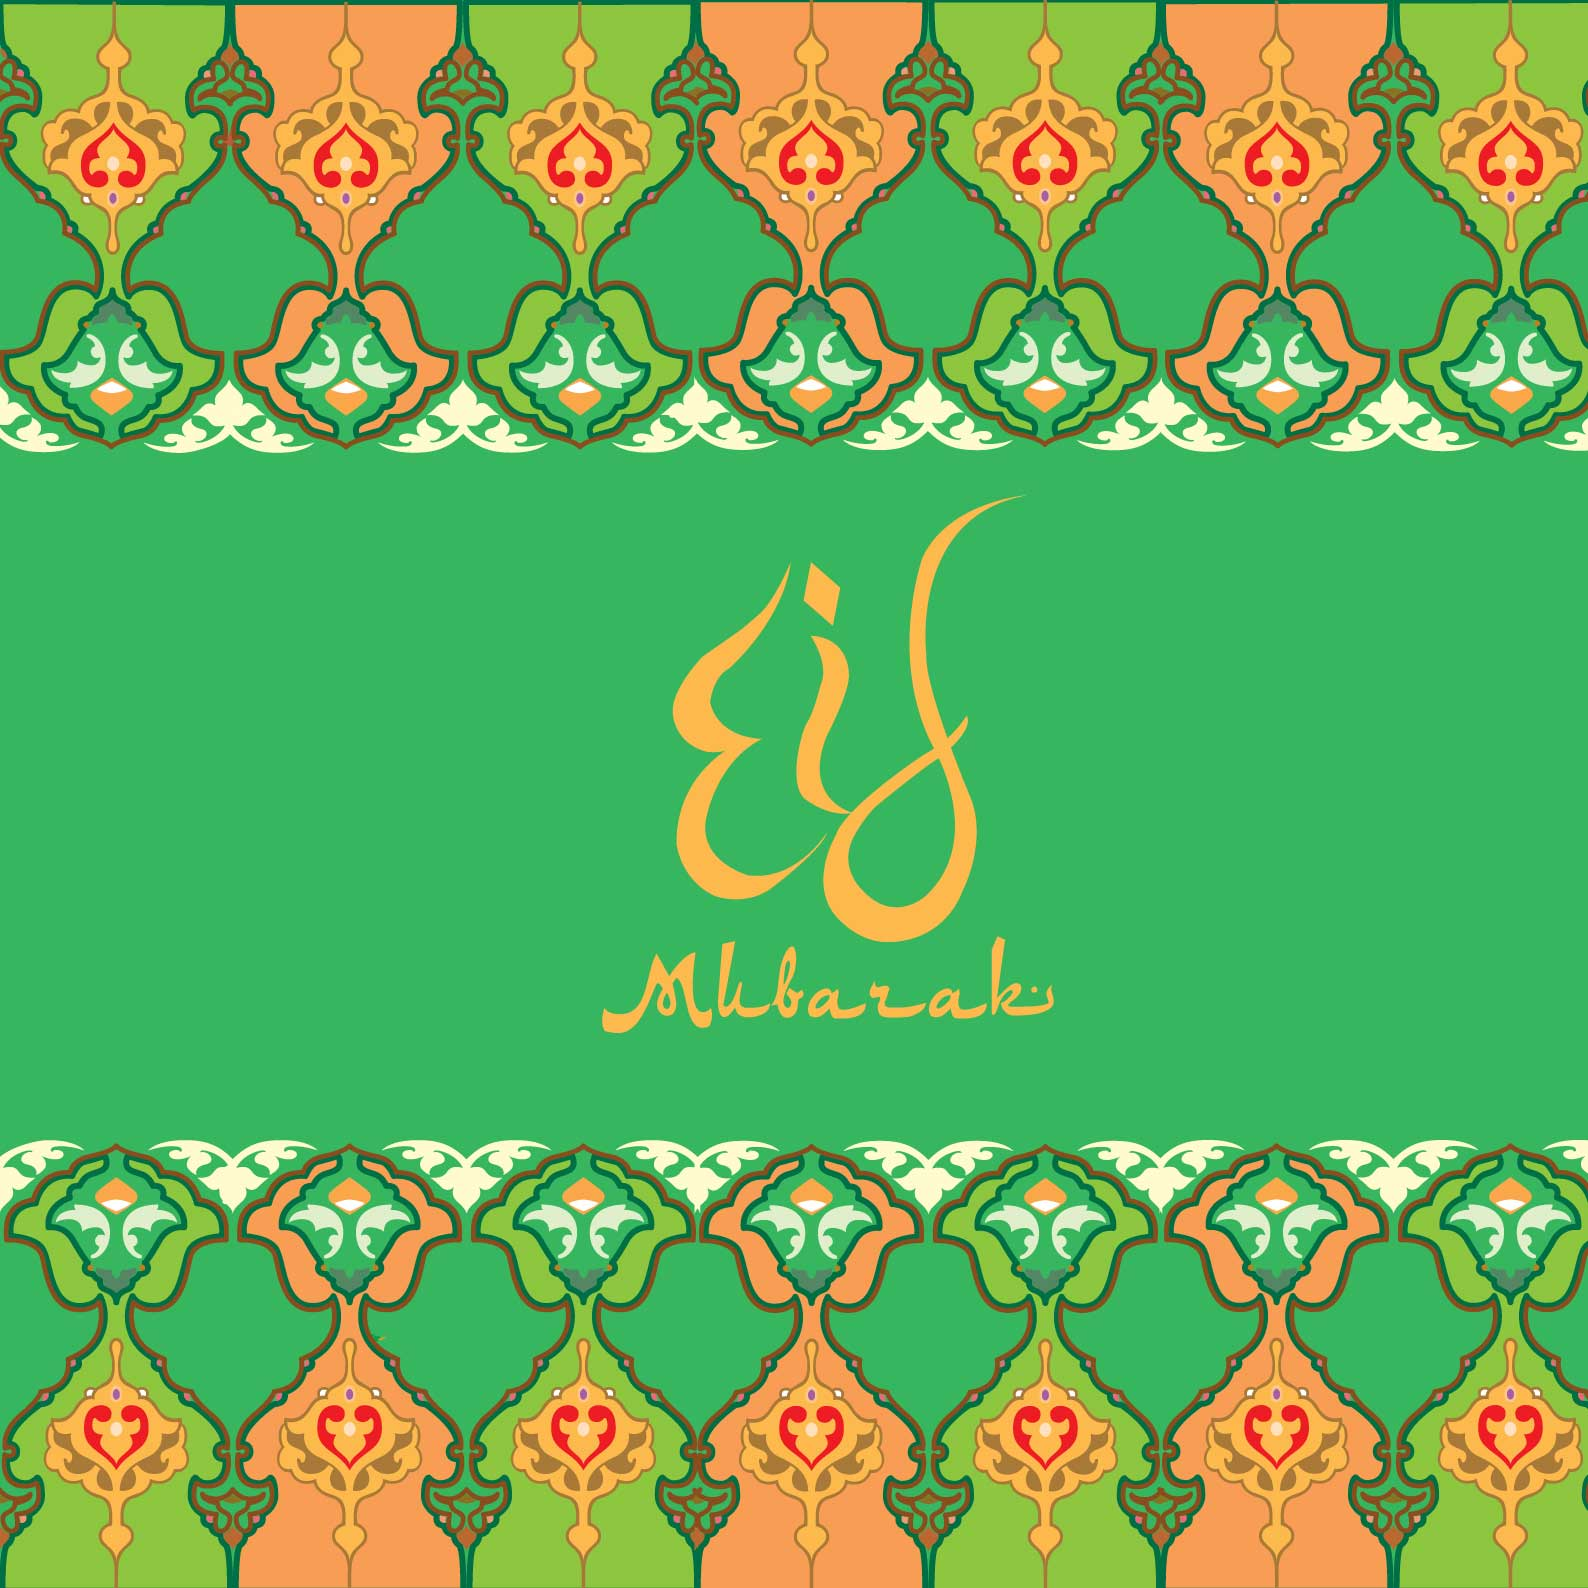 'Joy of the Day' Eid greeting card by Ananya